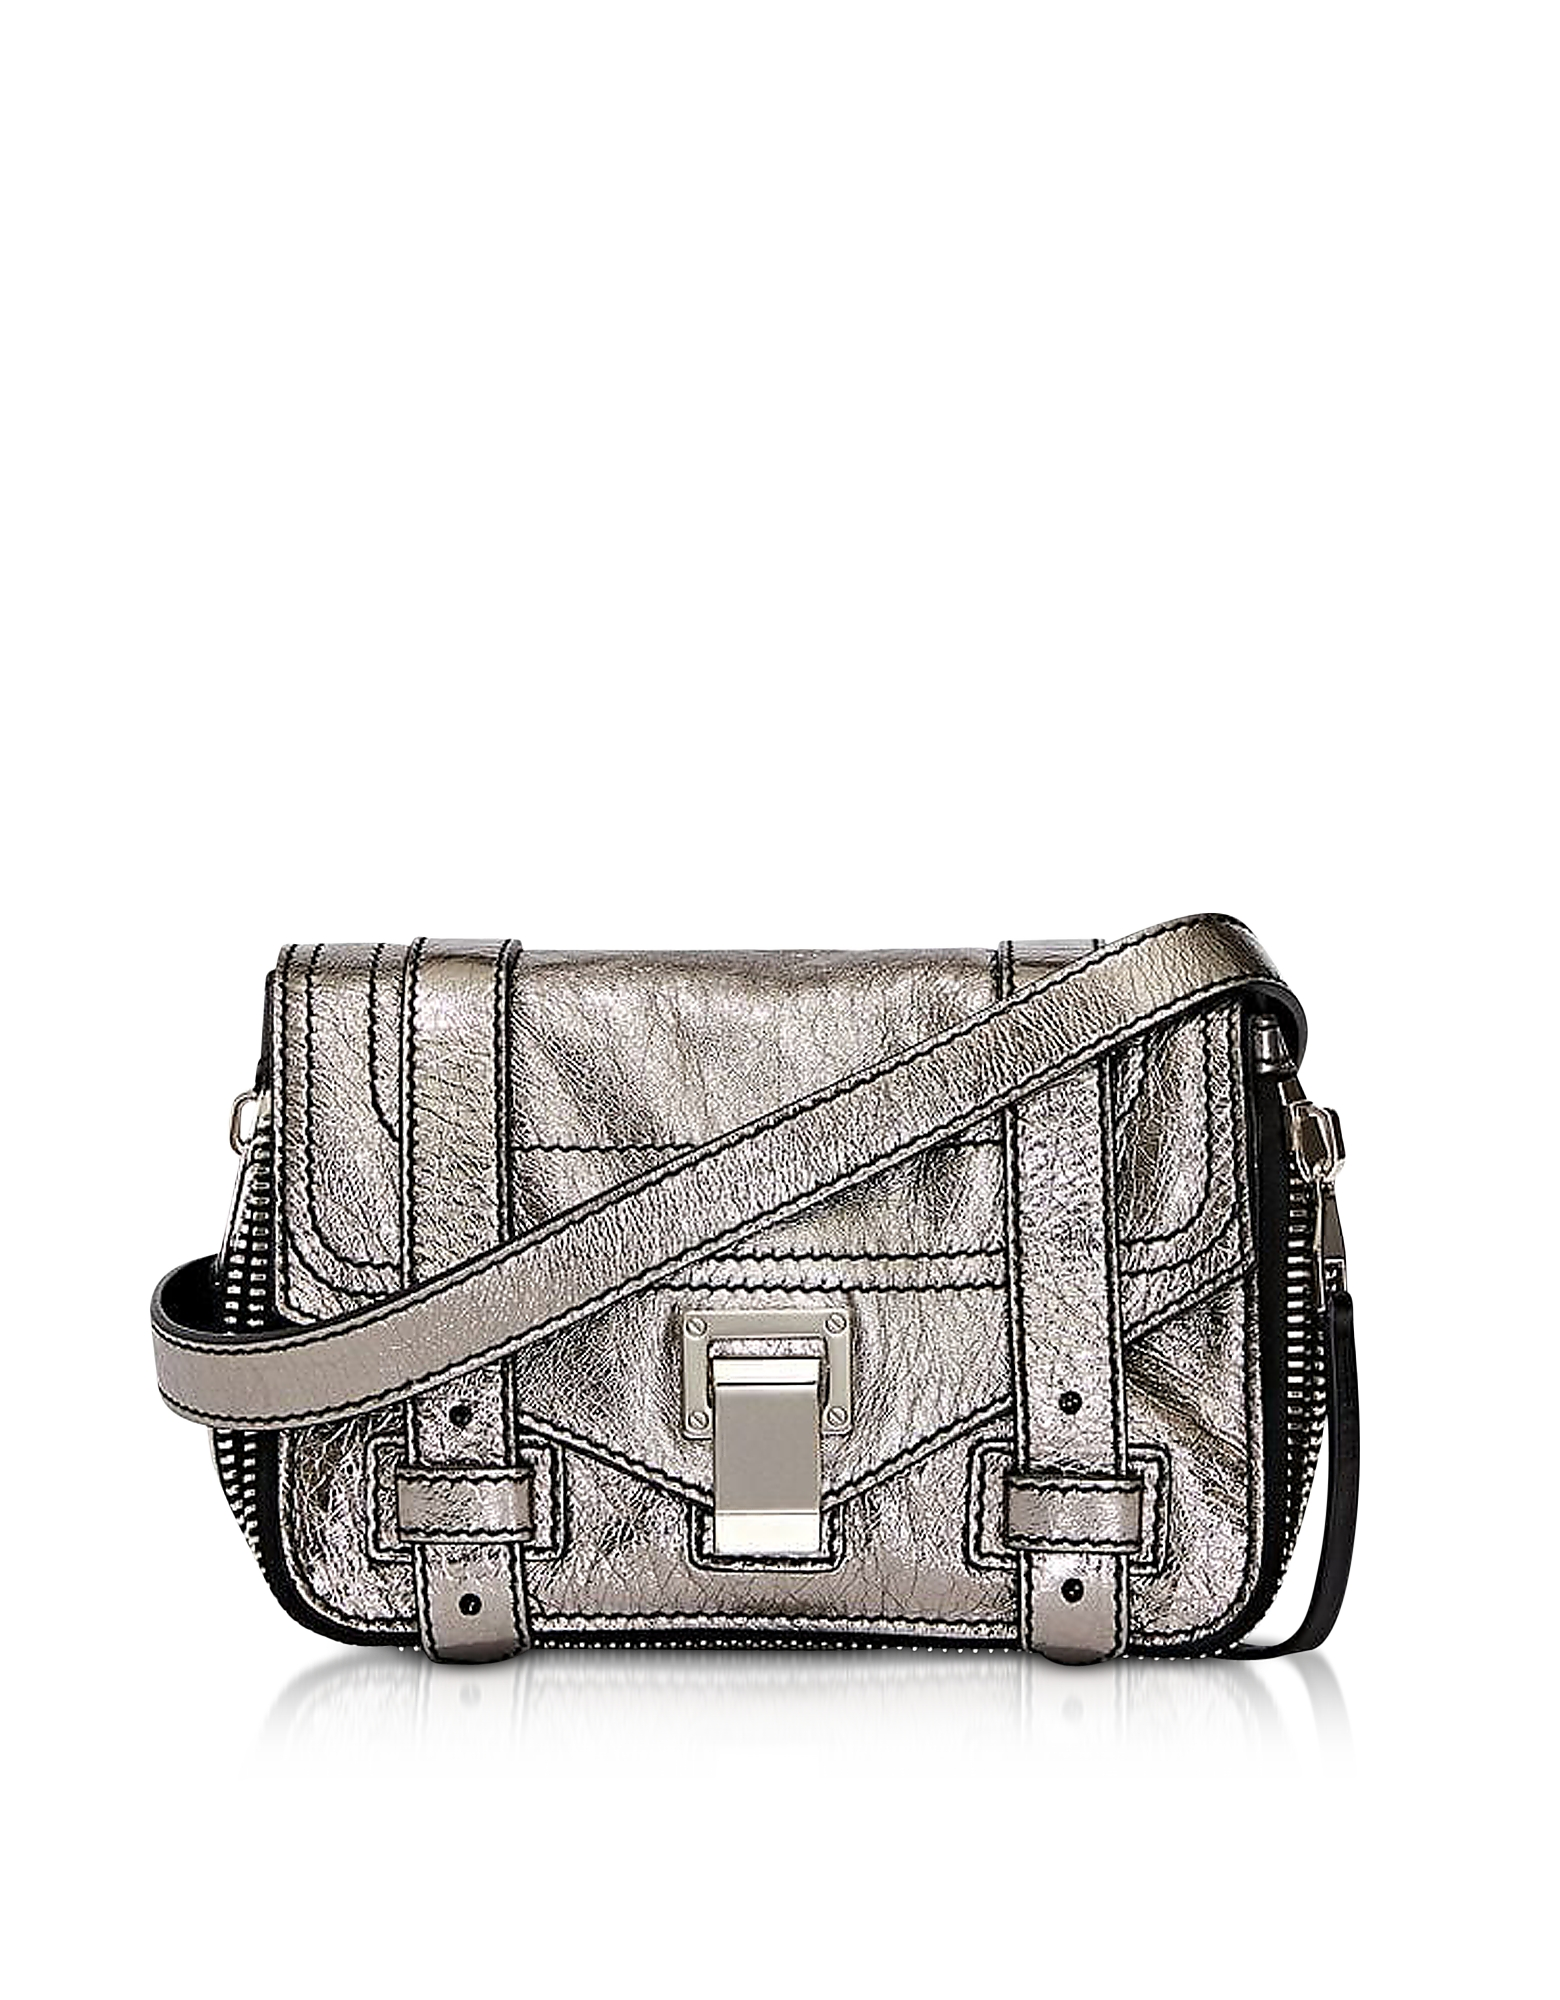 Ps1+ Zip-Metallic Leather Mini Crossbody